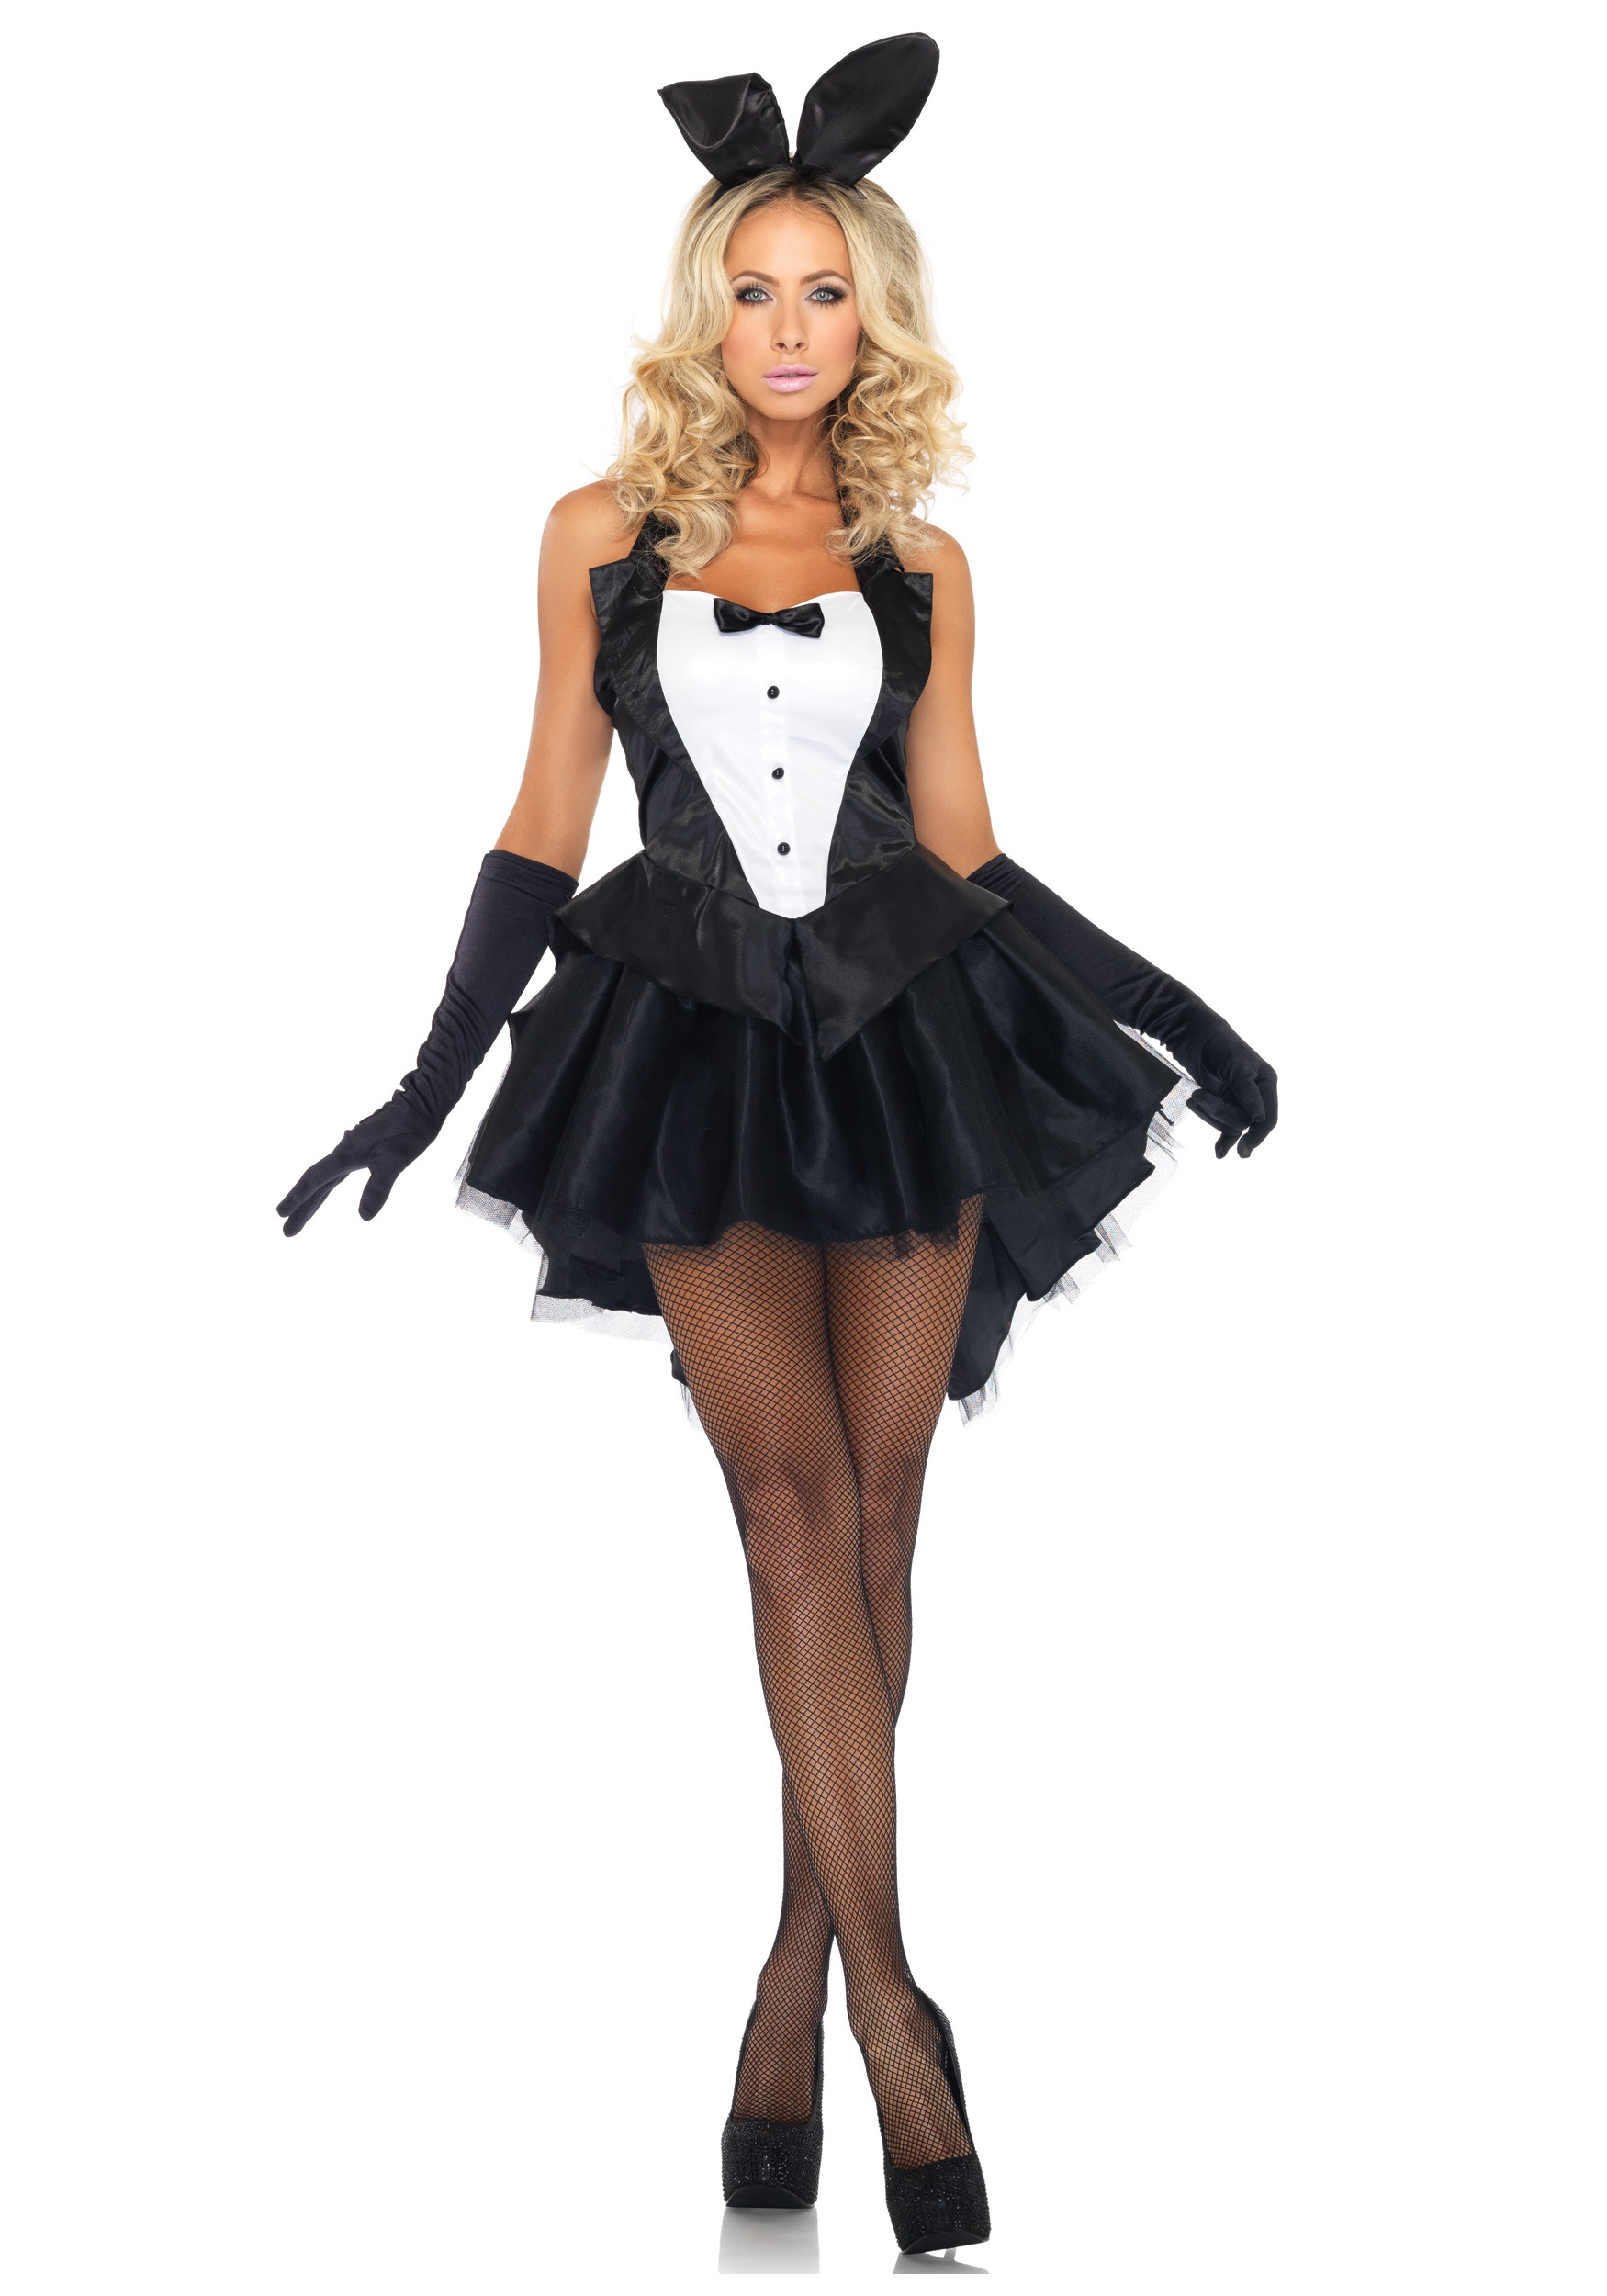 Bunny Costumes & Suits For Adults & Kids - HalloweenCostumes.com